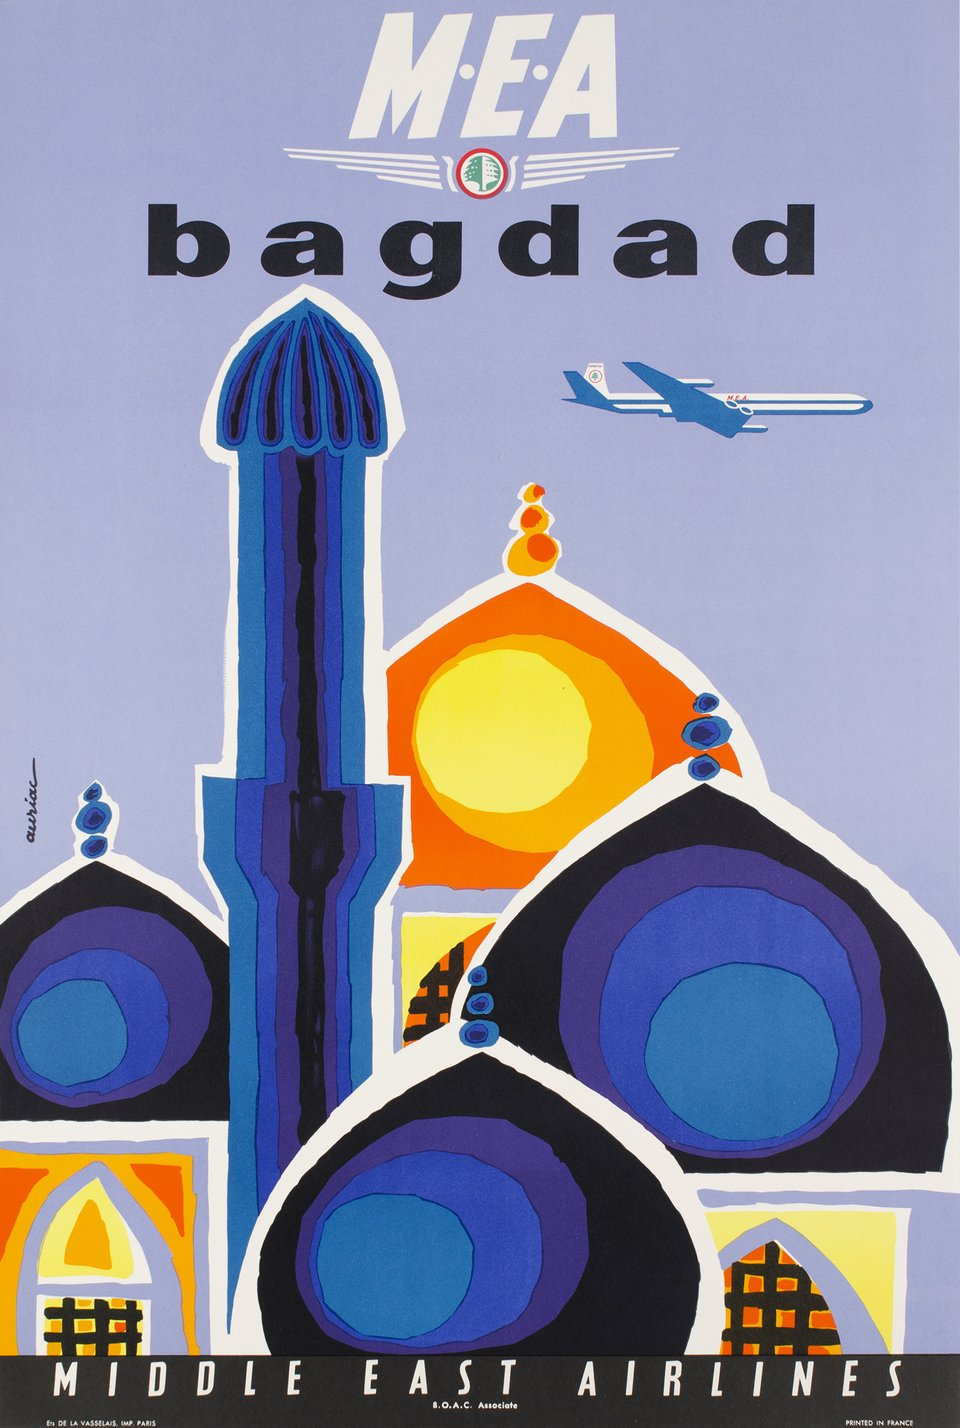 MEA, Middle East Airlines, Bagdad – Vintage poster – Jacques AURIAC – 1960